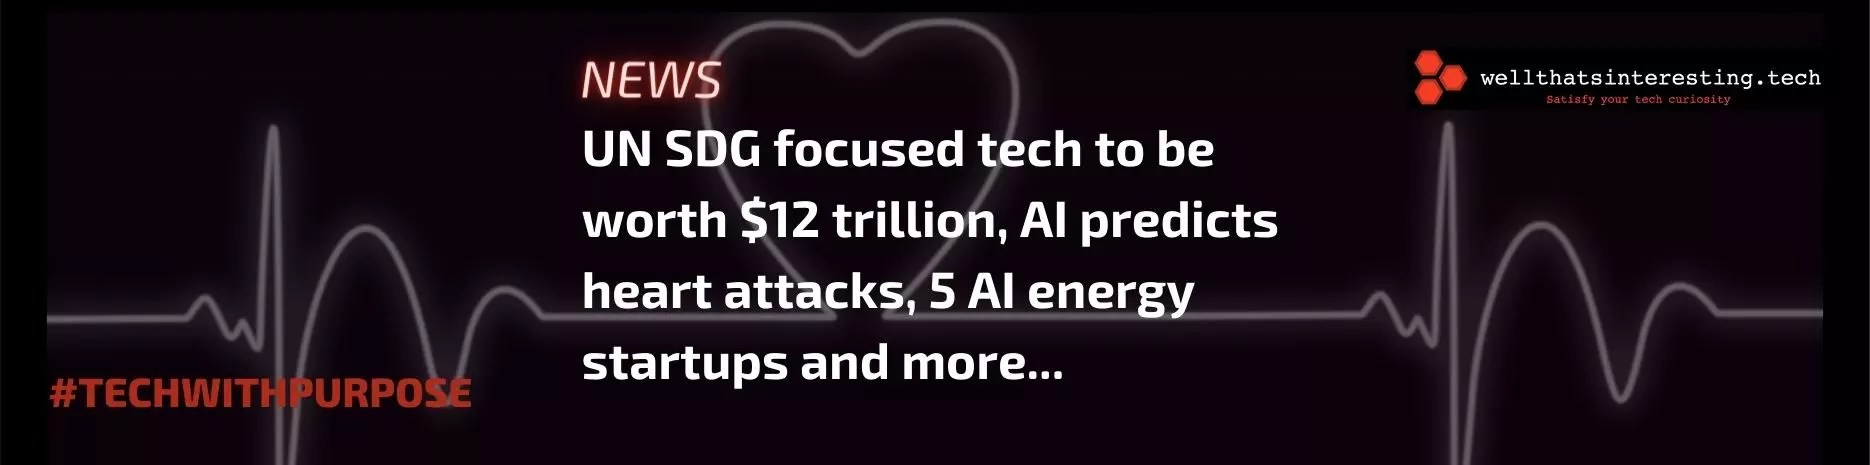 $12 Trillion, AI and health, IoT saves water - ai and health